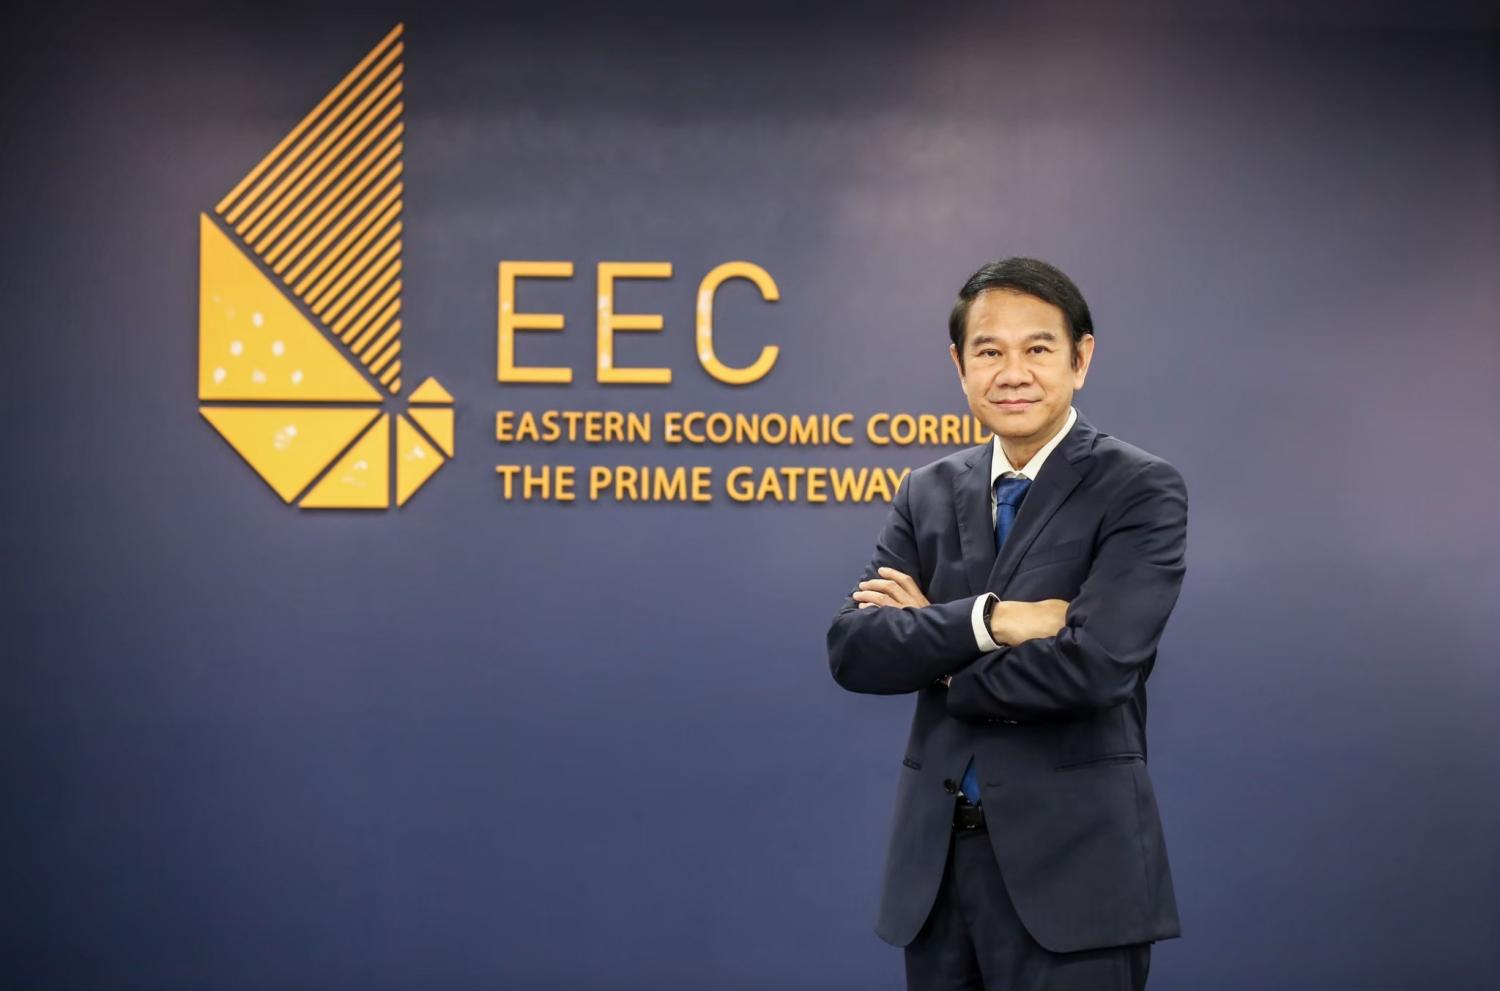 Mr Kanit says the EEC scheme alone is not enough to upgrade Thailand to become a developed country.